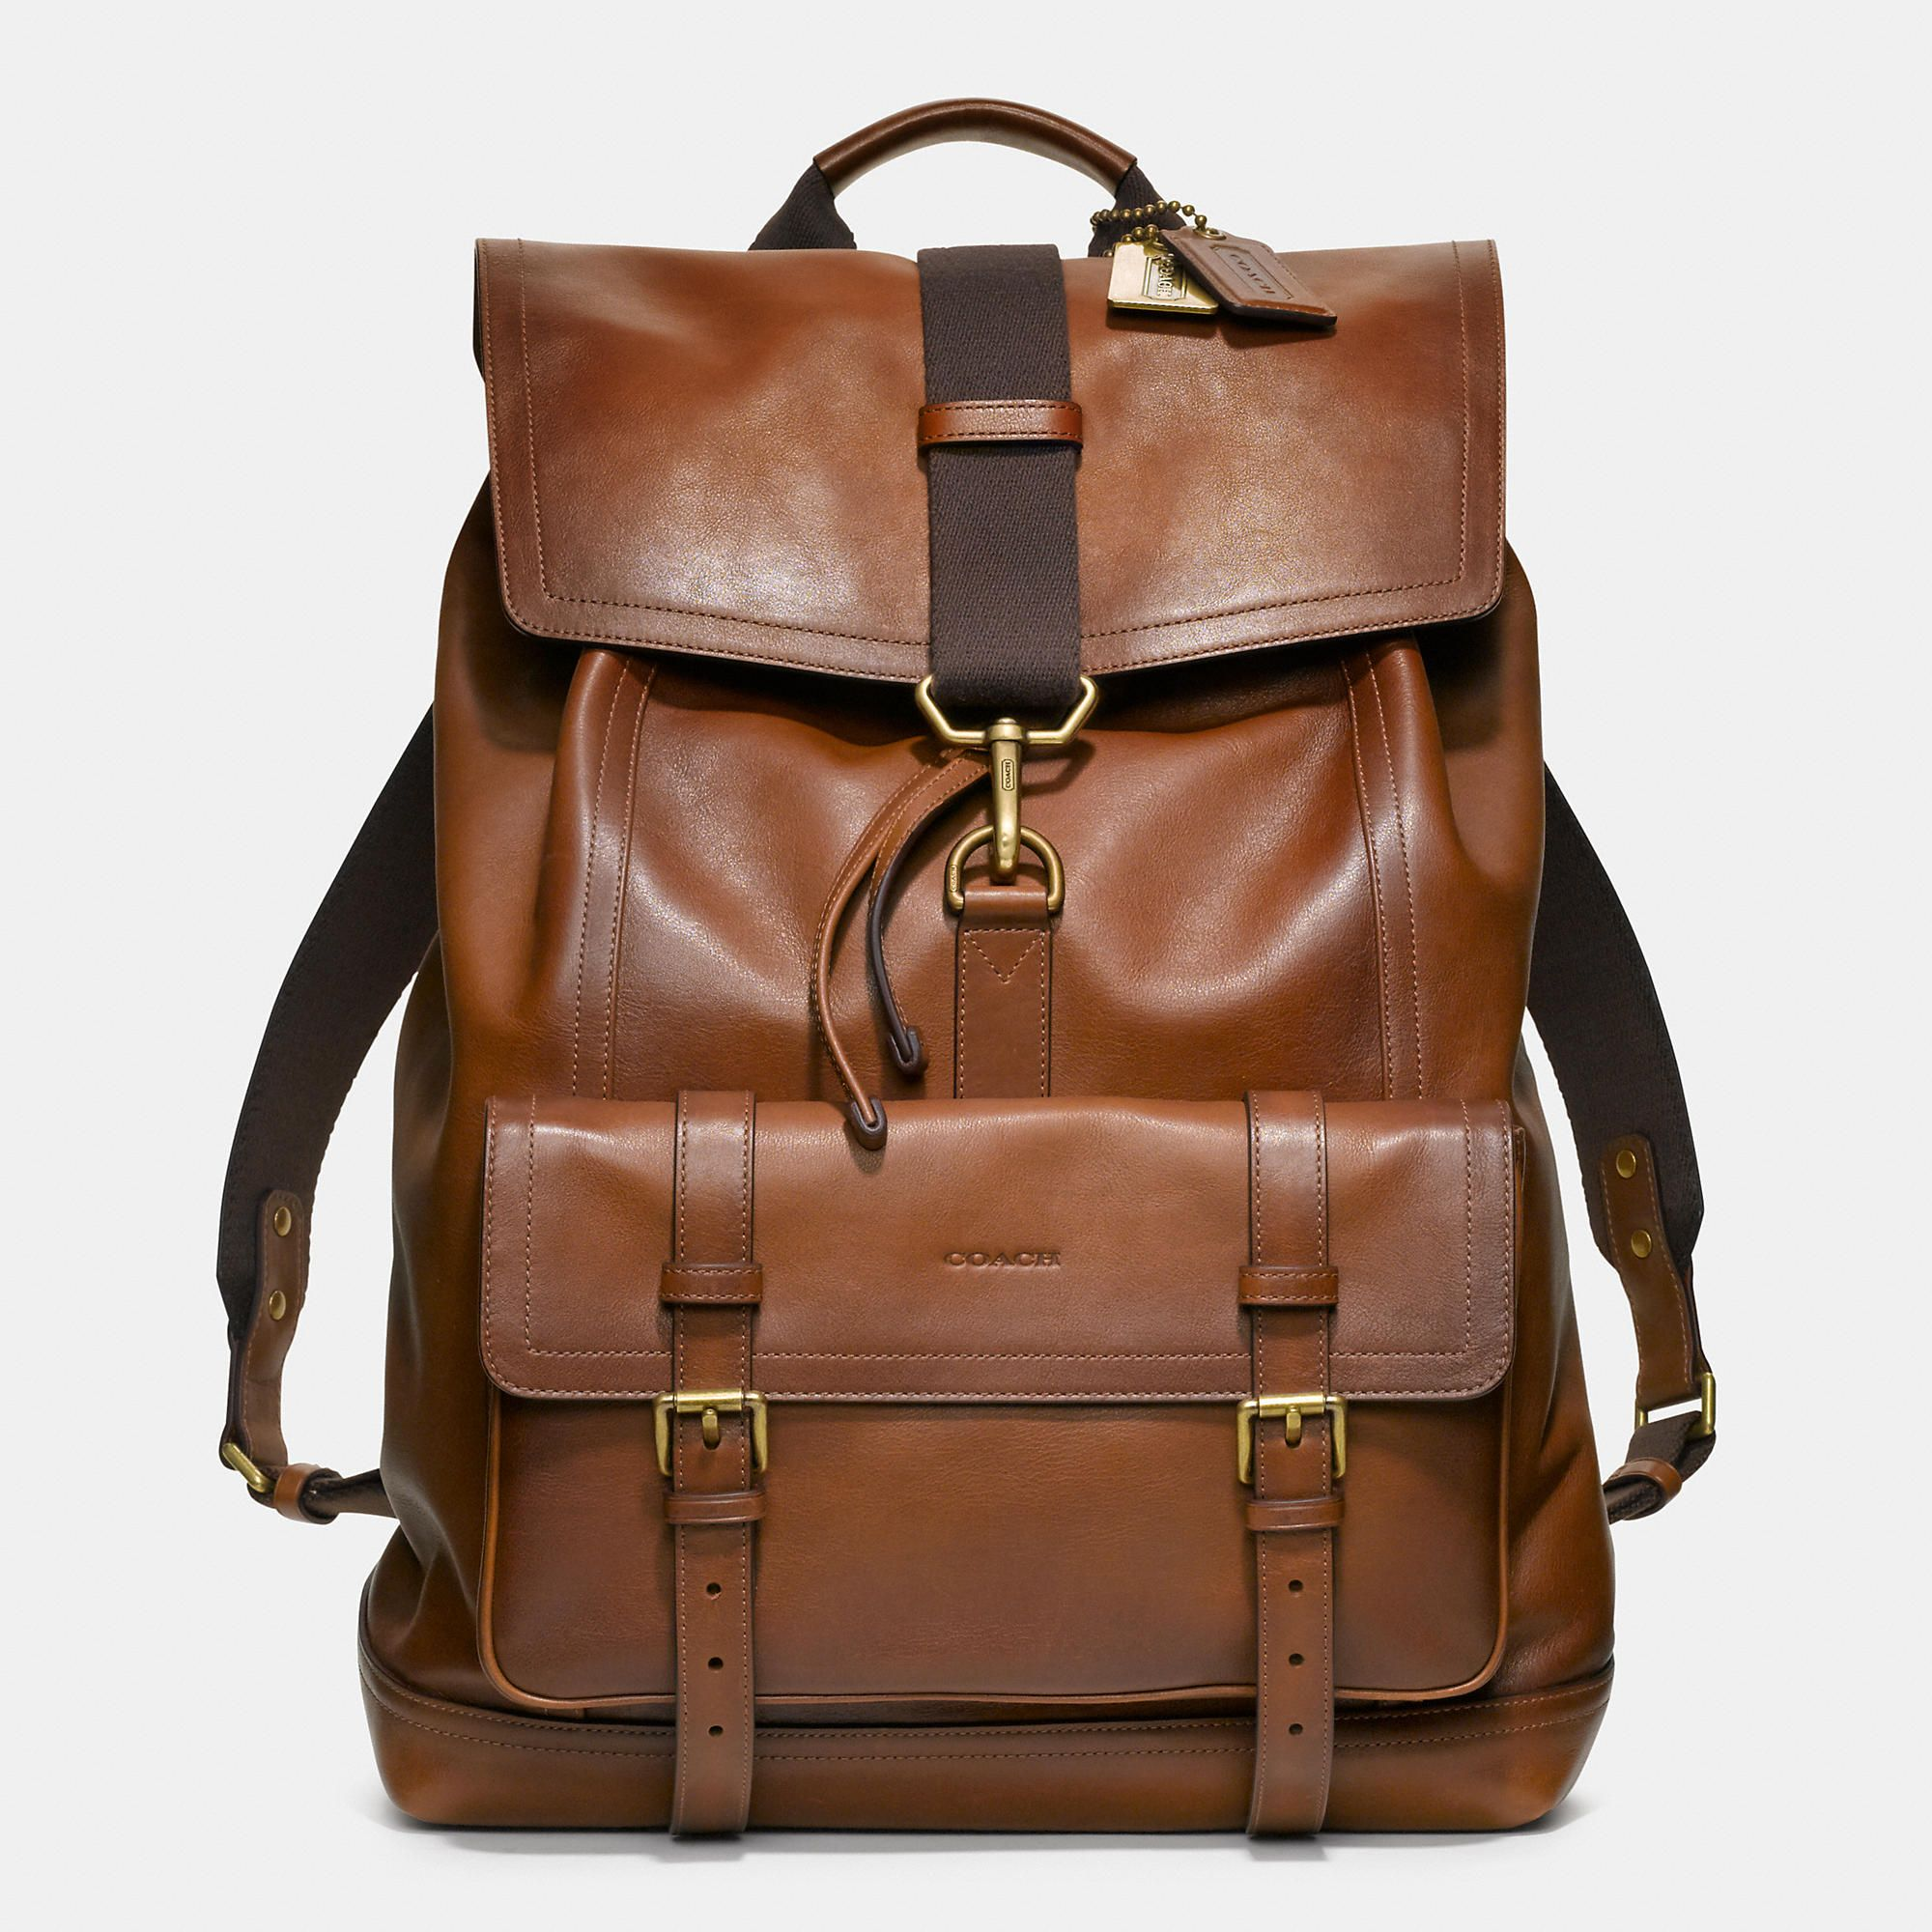 Bleecker Backpack In Leather Leather Backpack Man Bag Leather Men